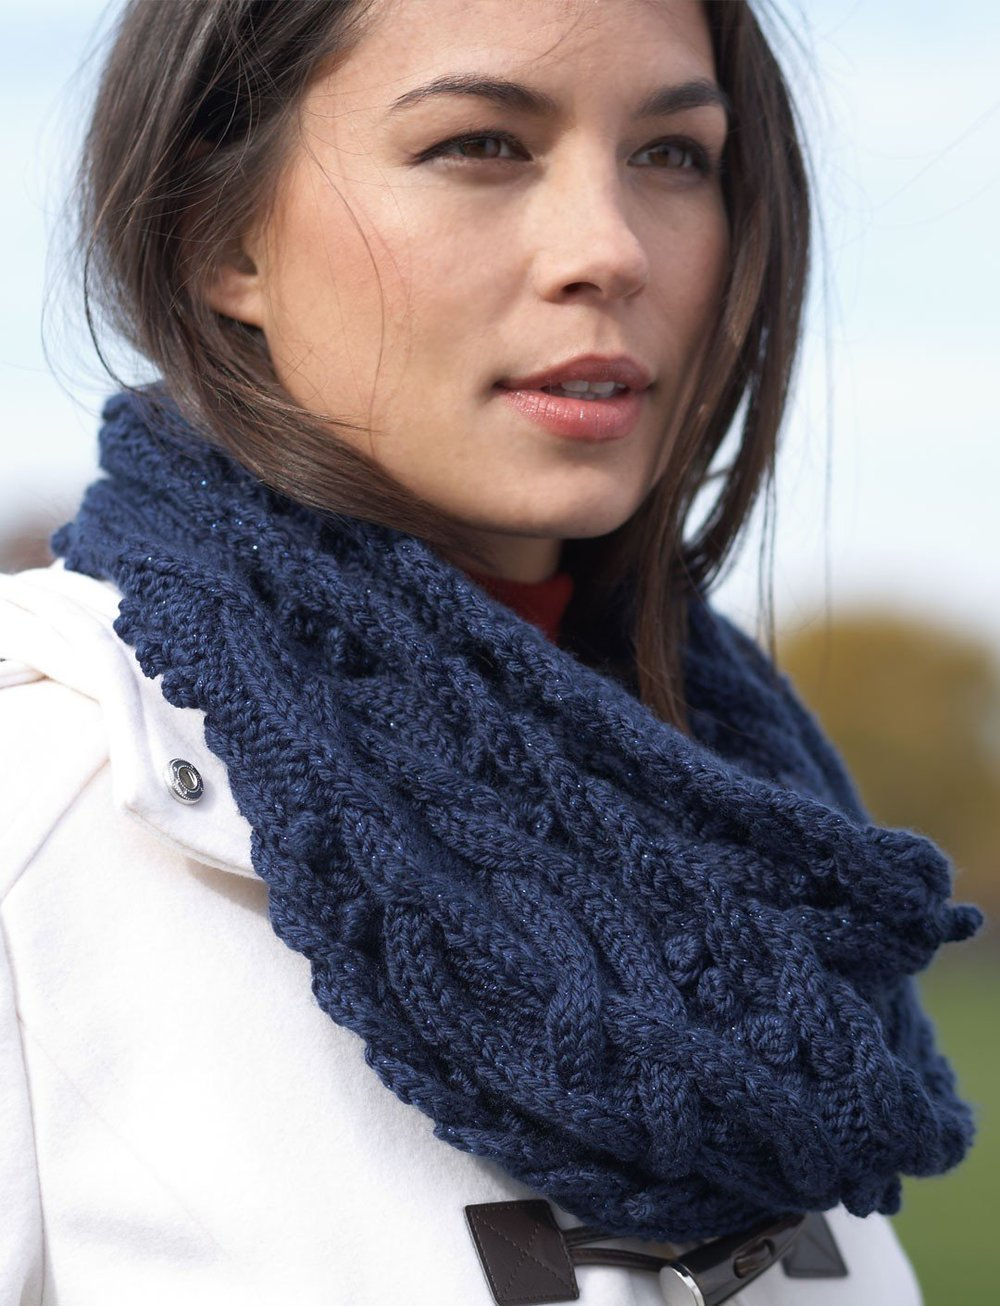 Free Knitting Patterns For Cabled Cowls : mystic-vines-cable-cowl-IR_ExtraLarge1000_ID-764443.jpg?v=764443